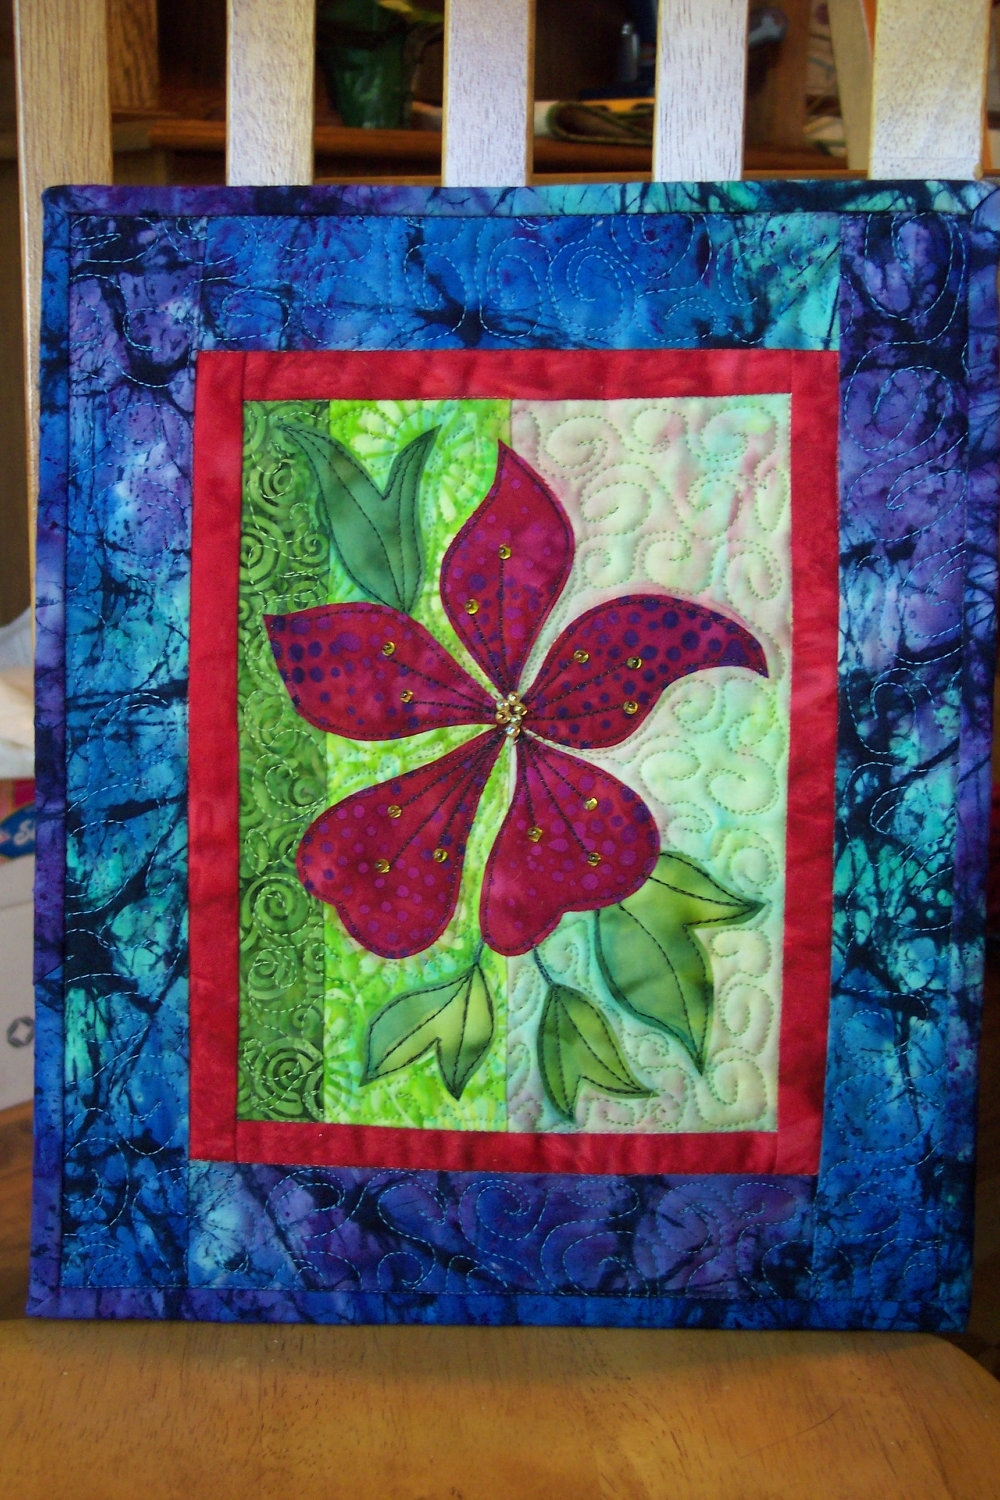 Landscape Quilt, Batik Fabric, Craft Pattern, Mixed Media, Wall intended for Recent Quilt Fabric Wall Art